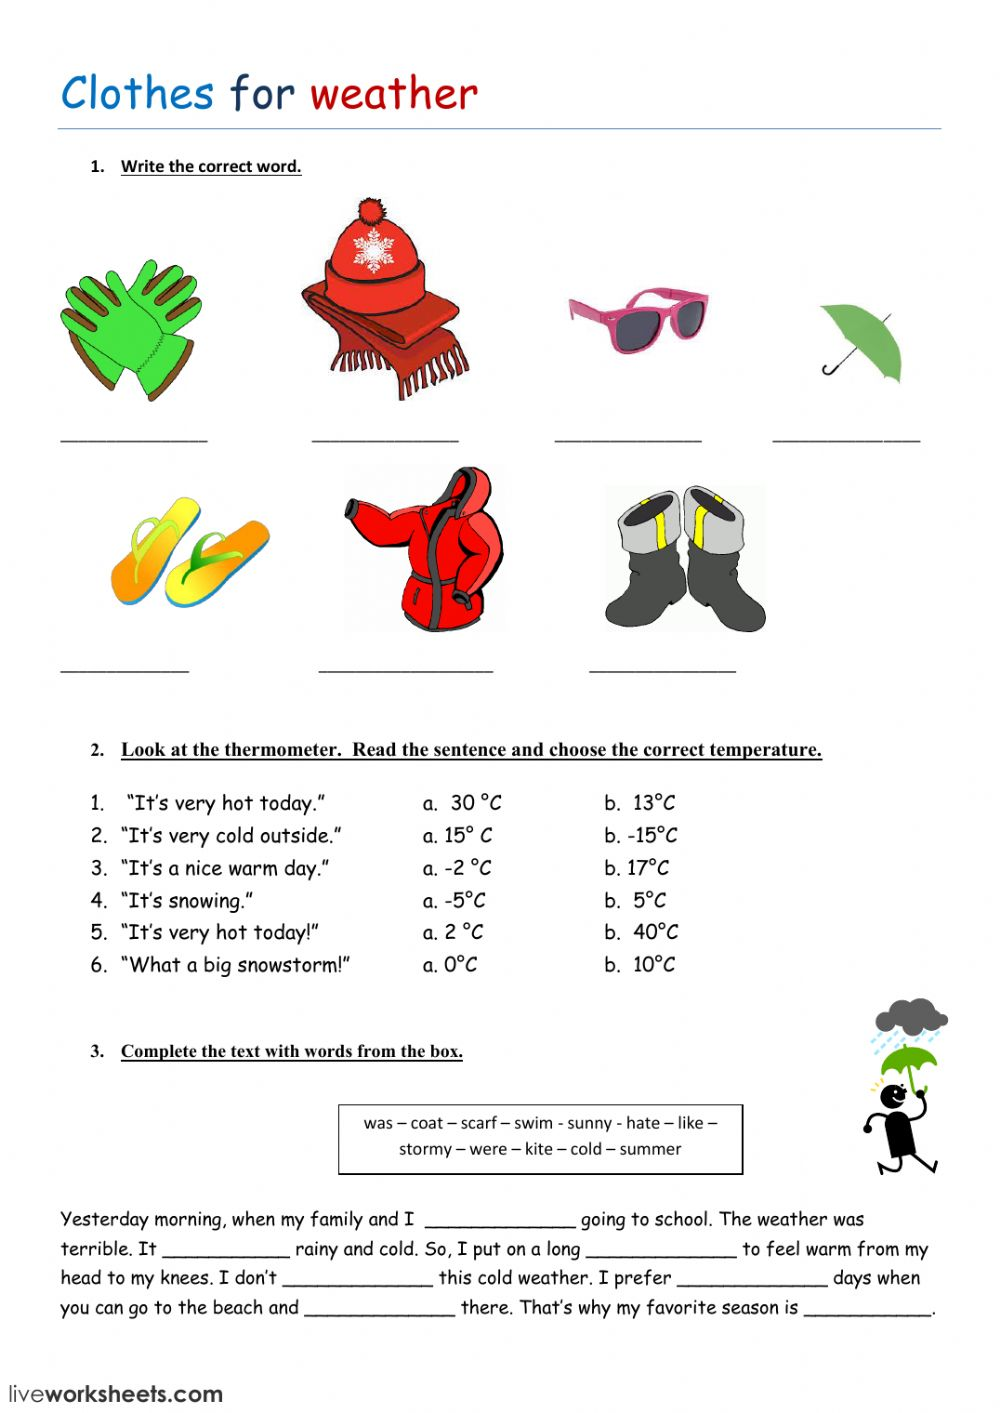 Clothes And Weather Worksheet